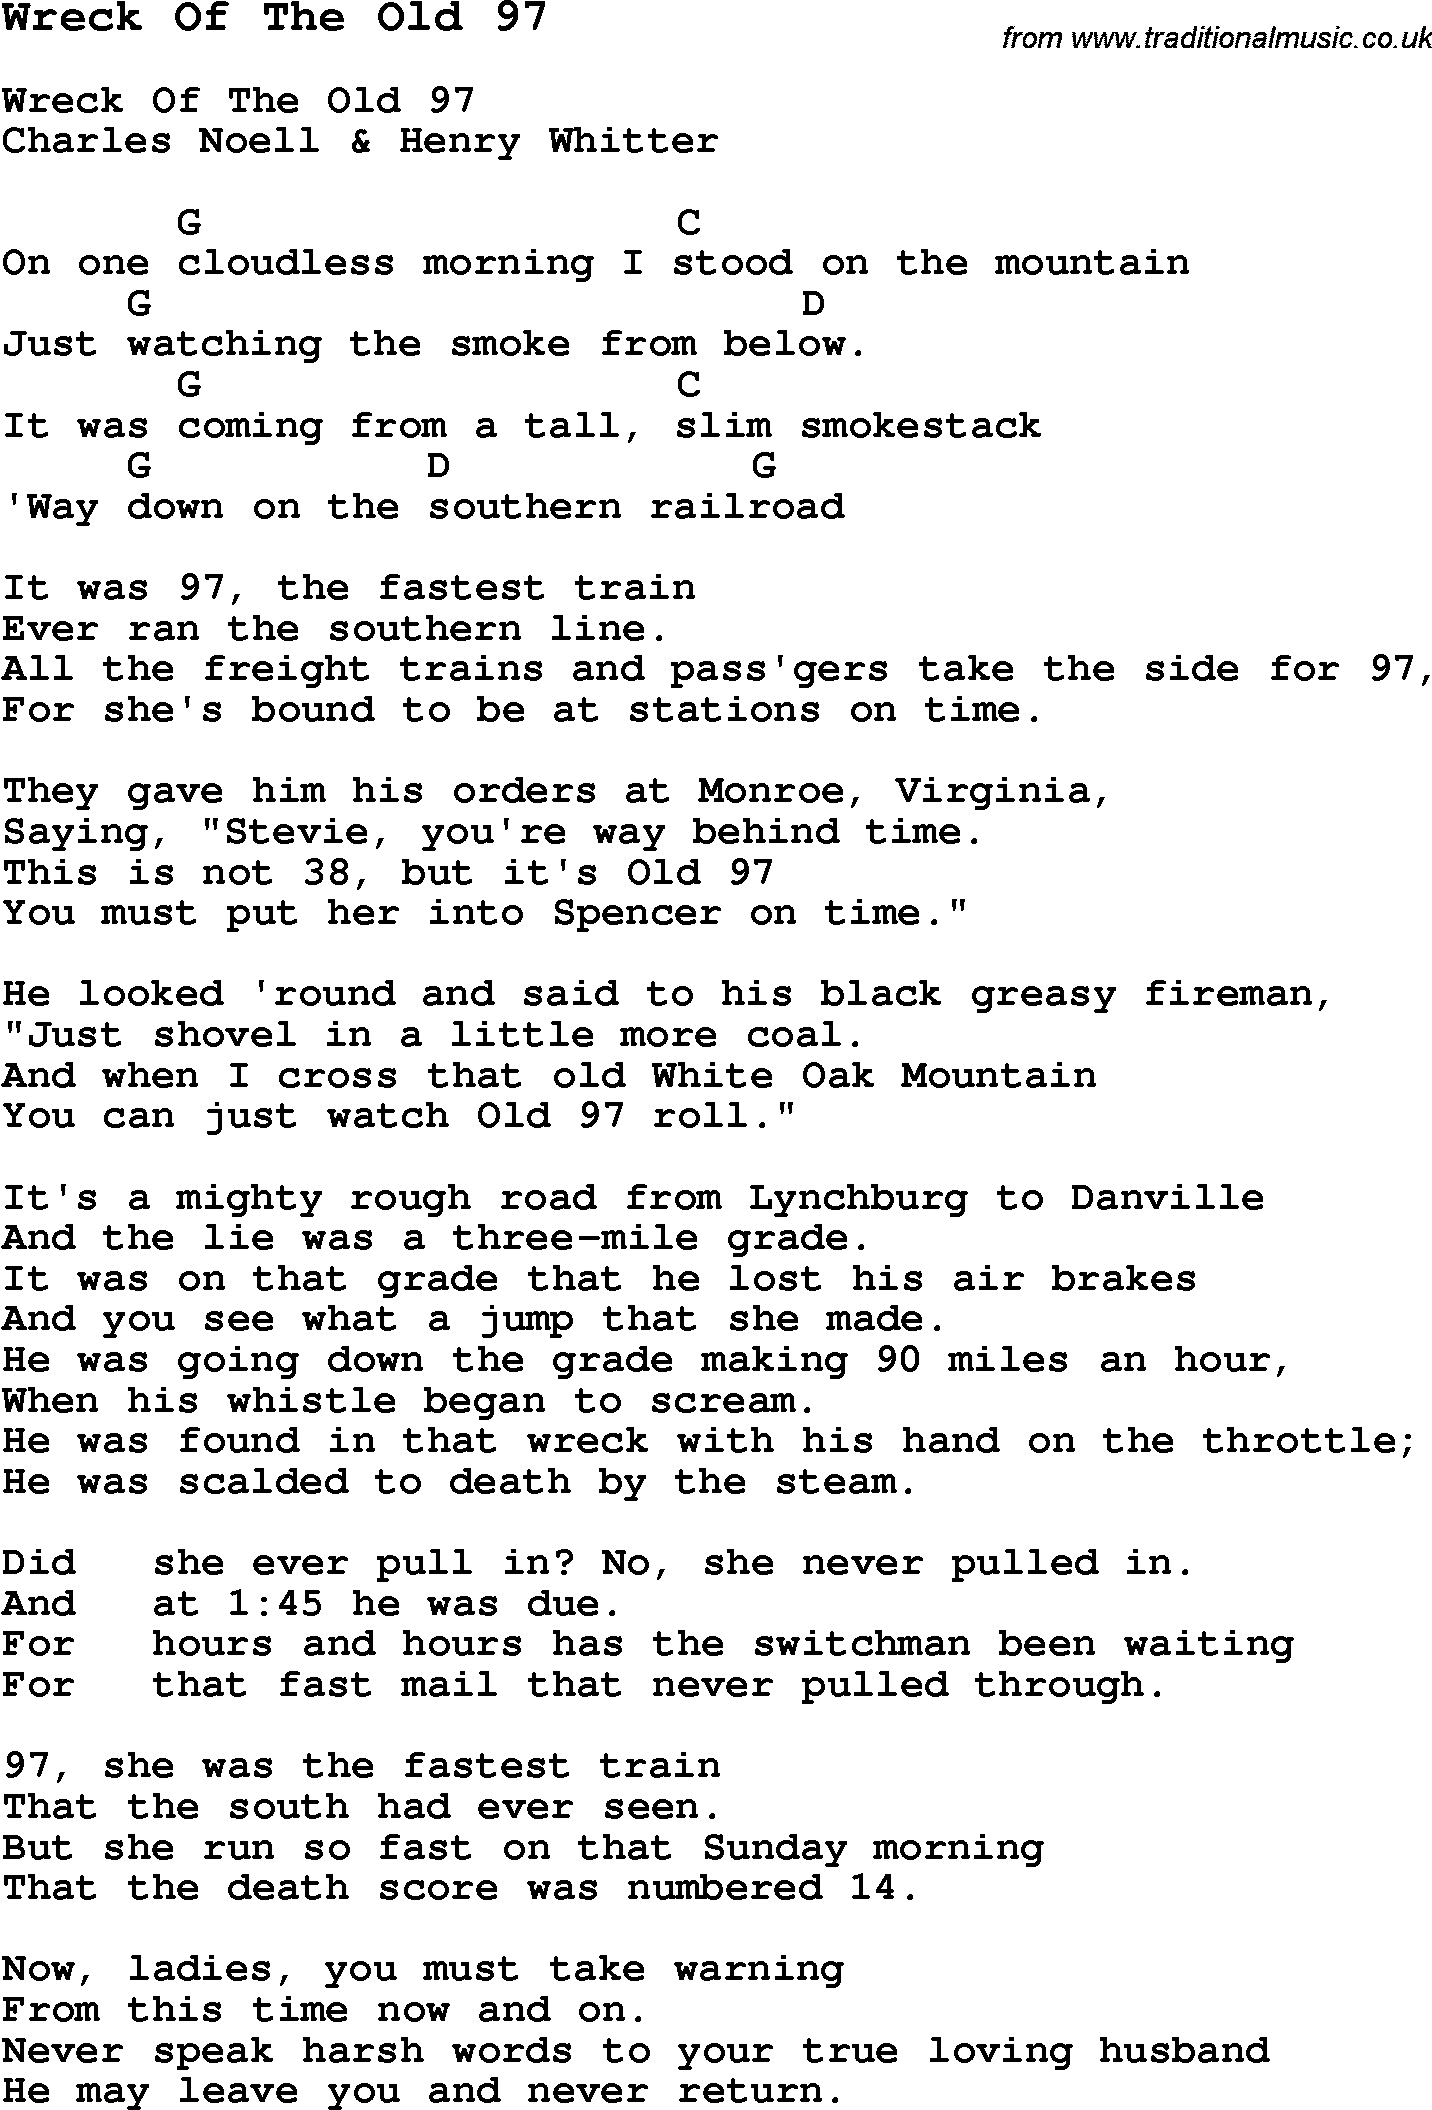 Song wreck of the old 97 with chords tabs and lyrics traditional song wreck of the old 97 with chords tabs and lyrics hexwebz Images